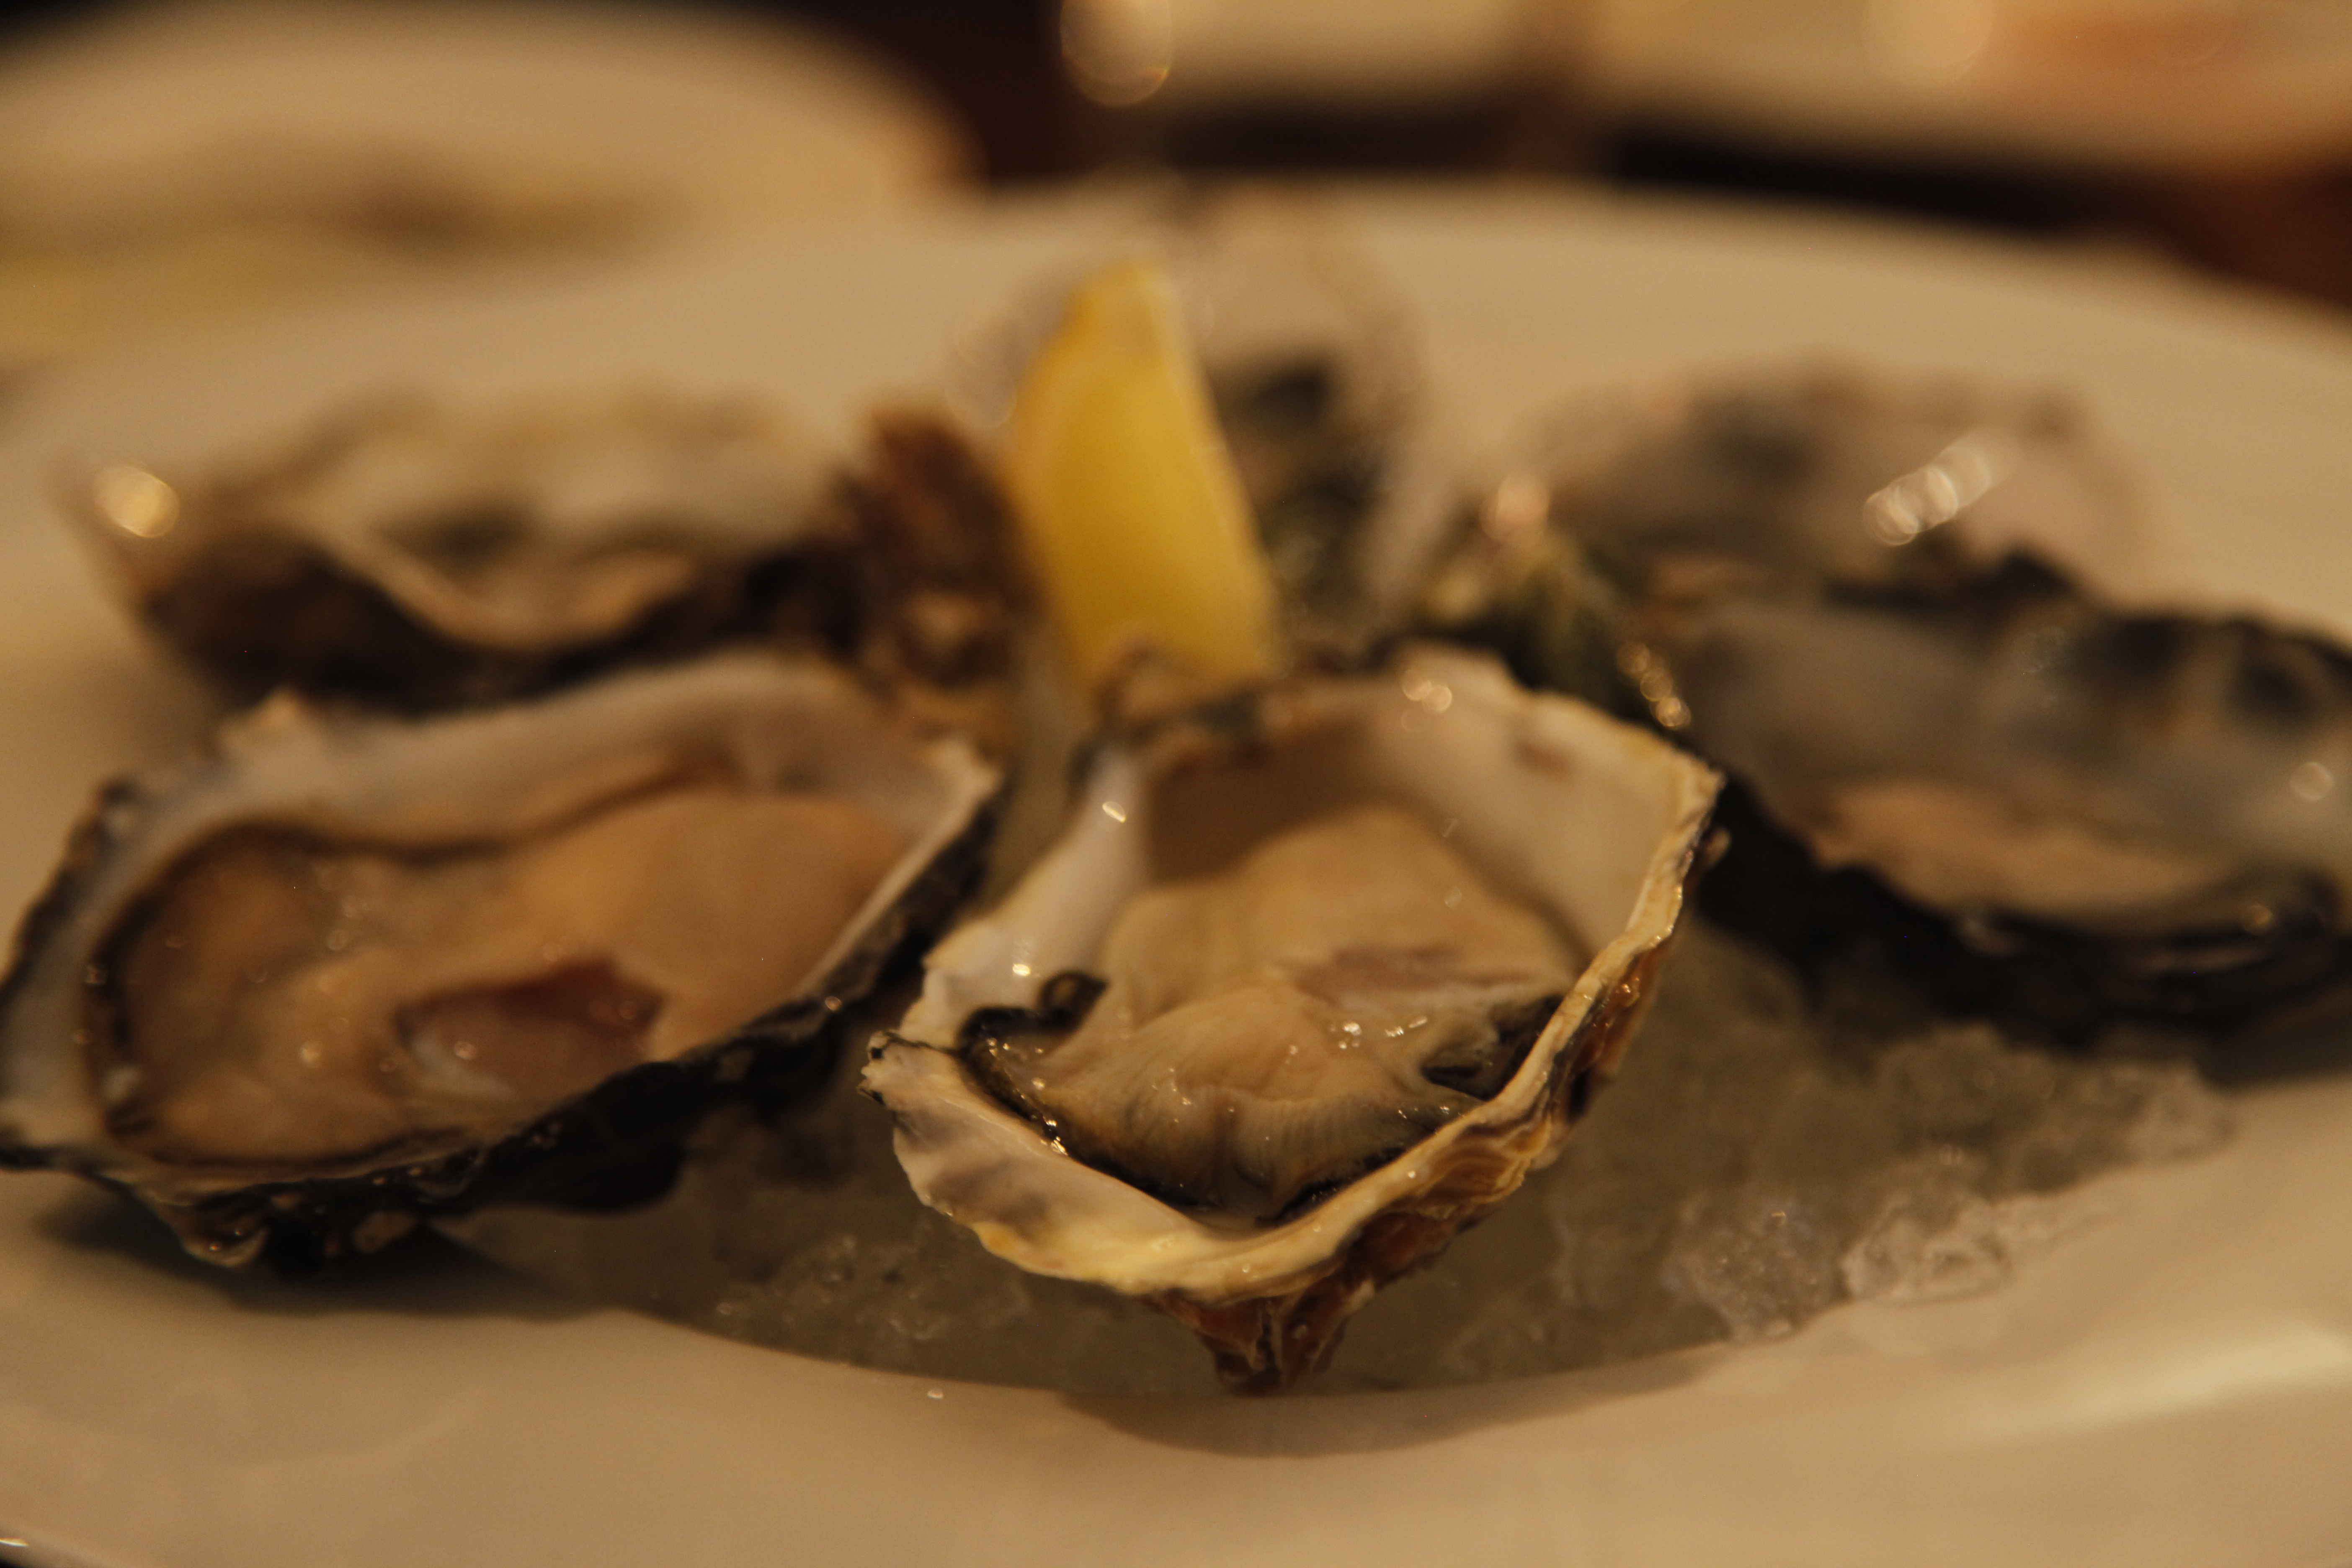 Sucullent oysters from across the world